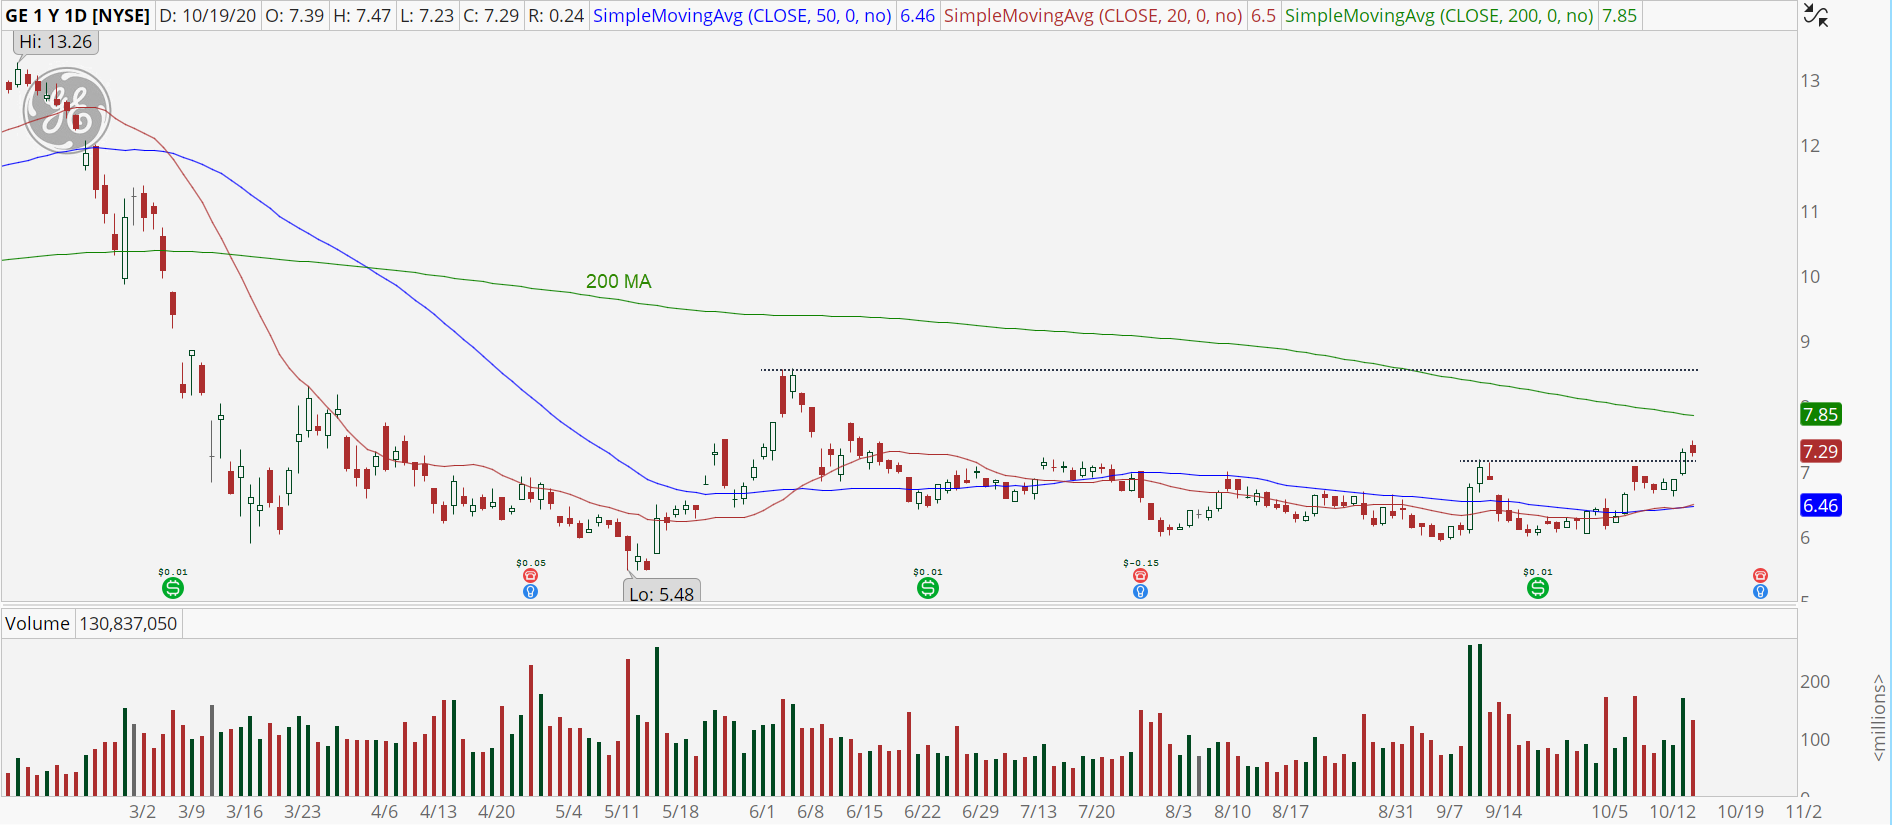 General Electric (GE) chart showing emerging uptrend